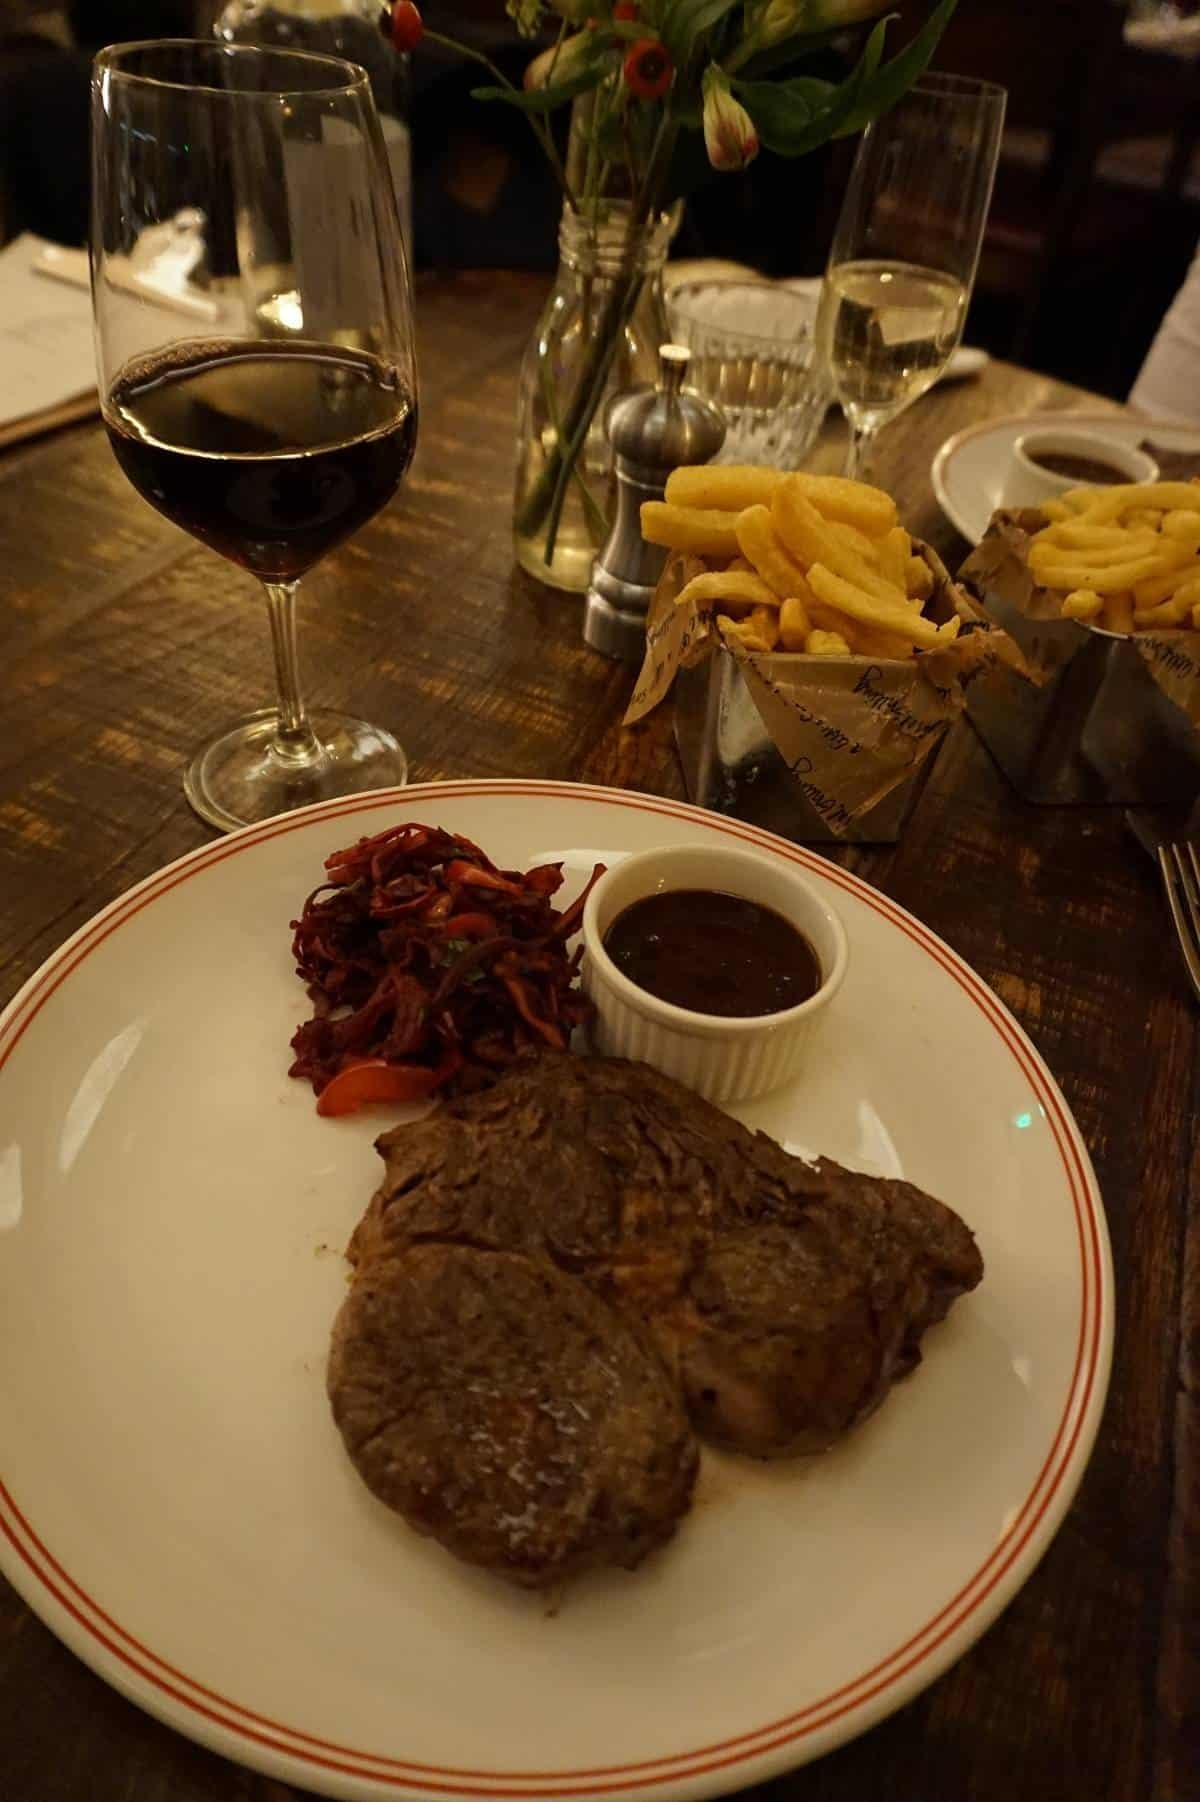 Ribeye steak with chips and glass of Malbec